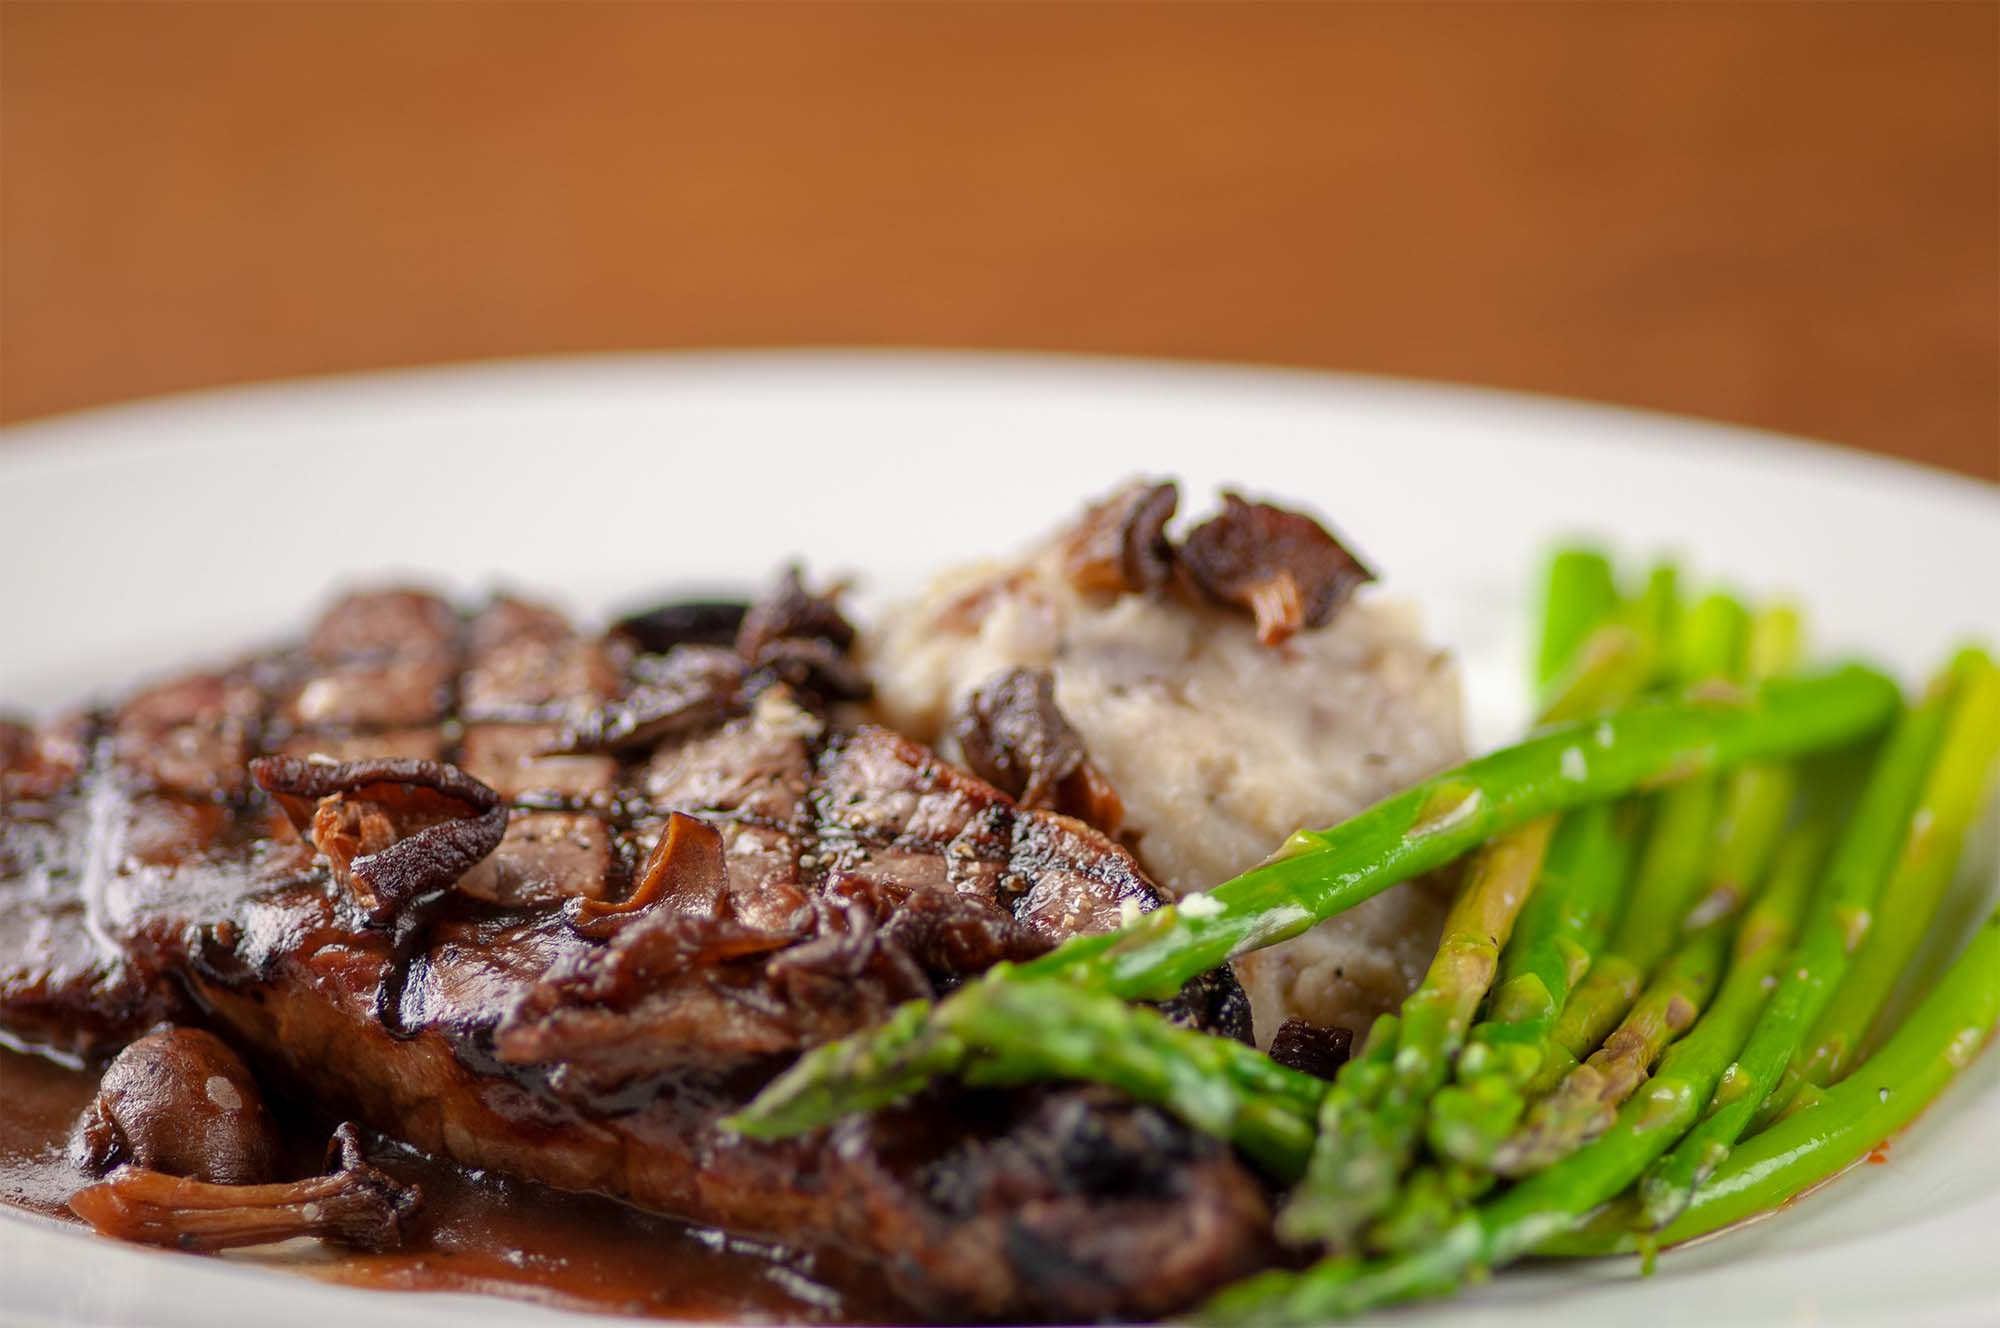 steak with mashed potatoes and asparagus